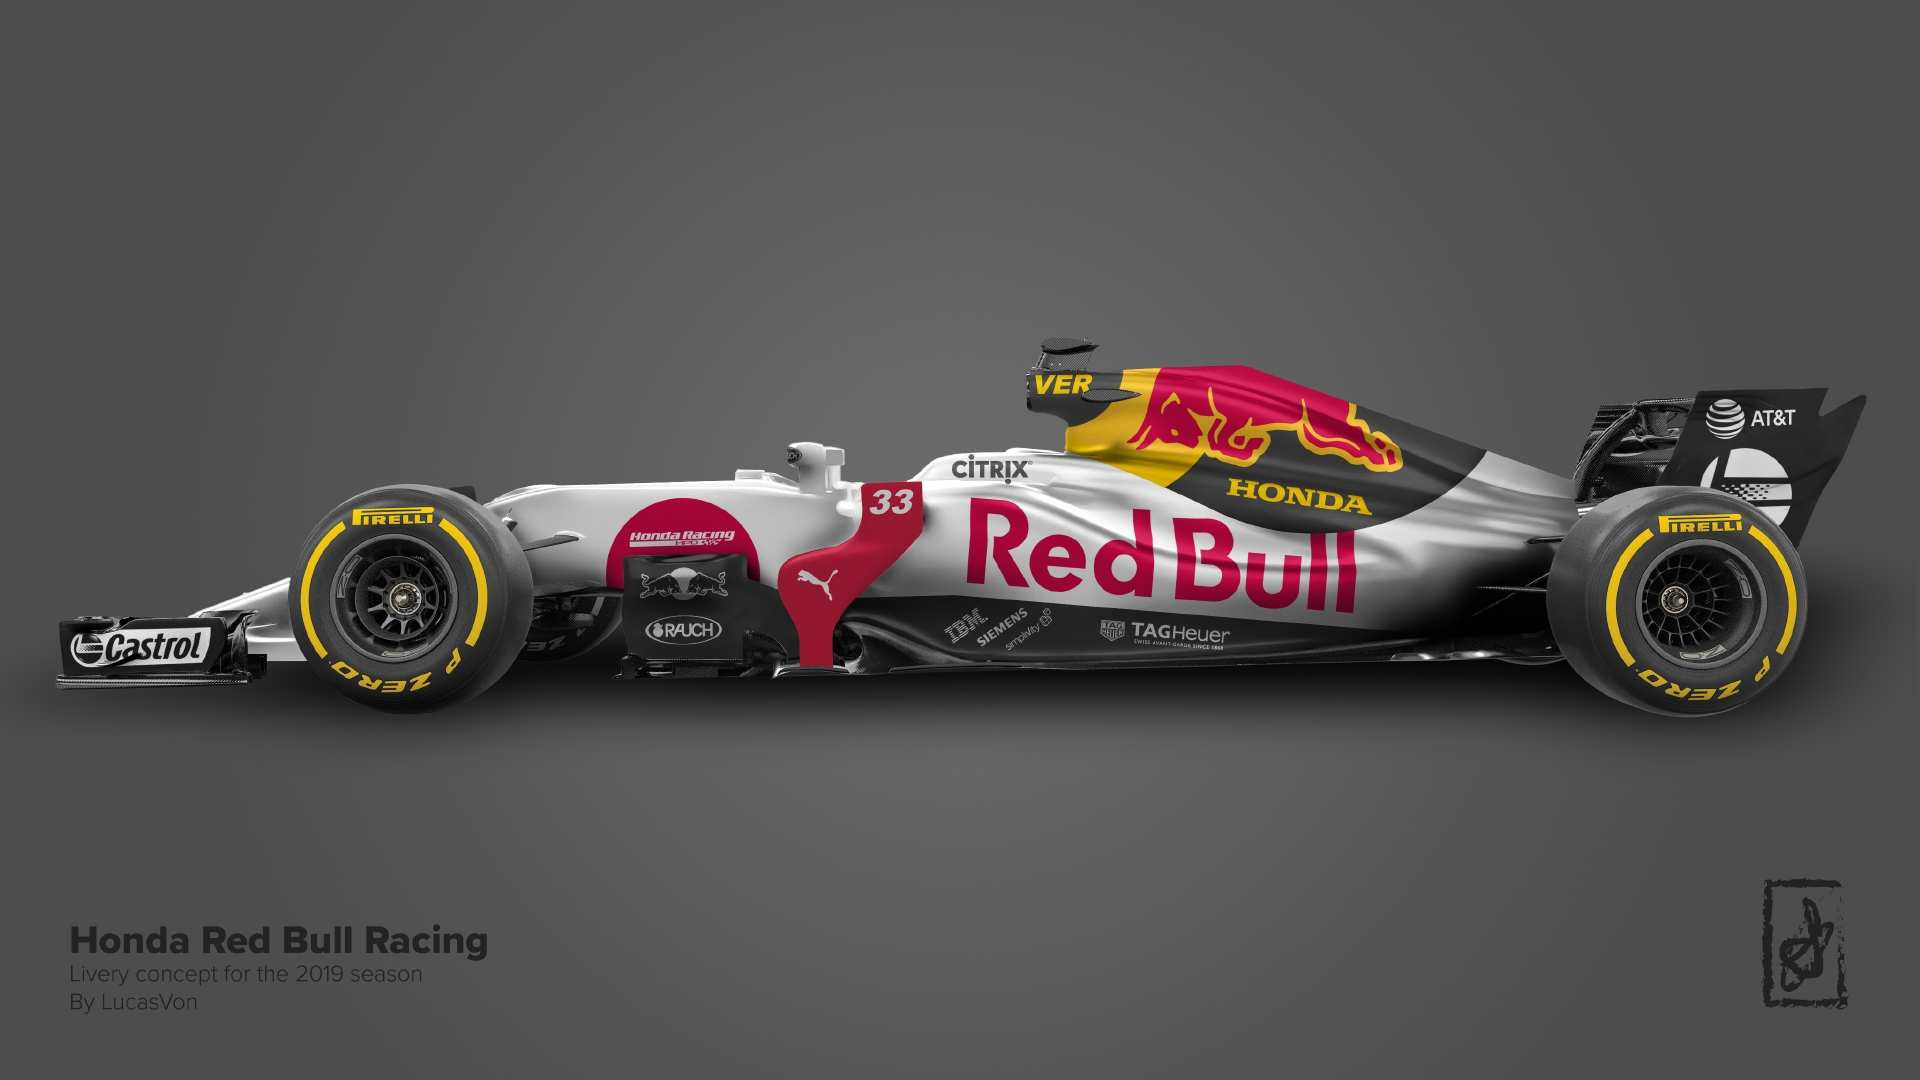 21 All New Best New Ferrari Driver F1 2019 Redesign Price And Review Release Date with Best New Ferrari Driver F1 2019 Redesign Price And Review